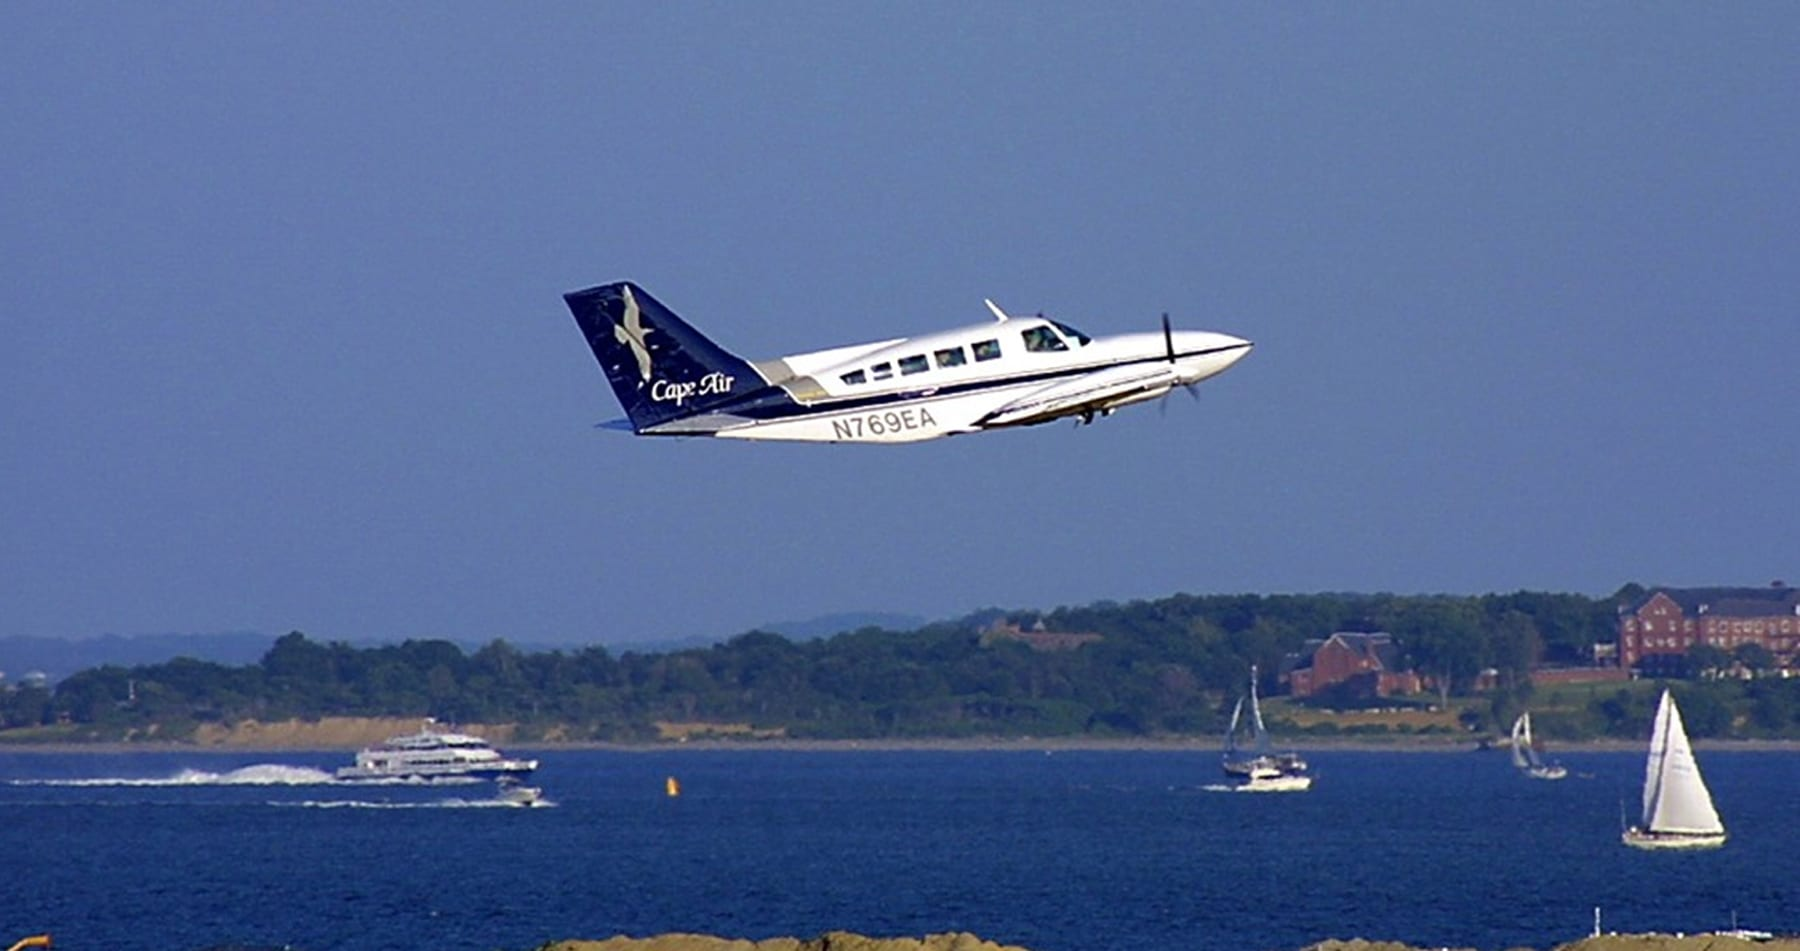 2  ROUND TRIP TICKETS <br/> Donated by: CAPE AIR <br/> Valued at: $500